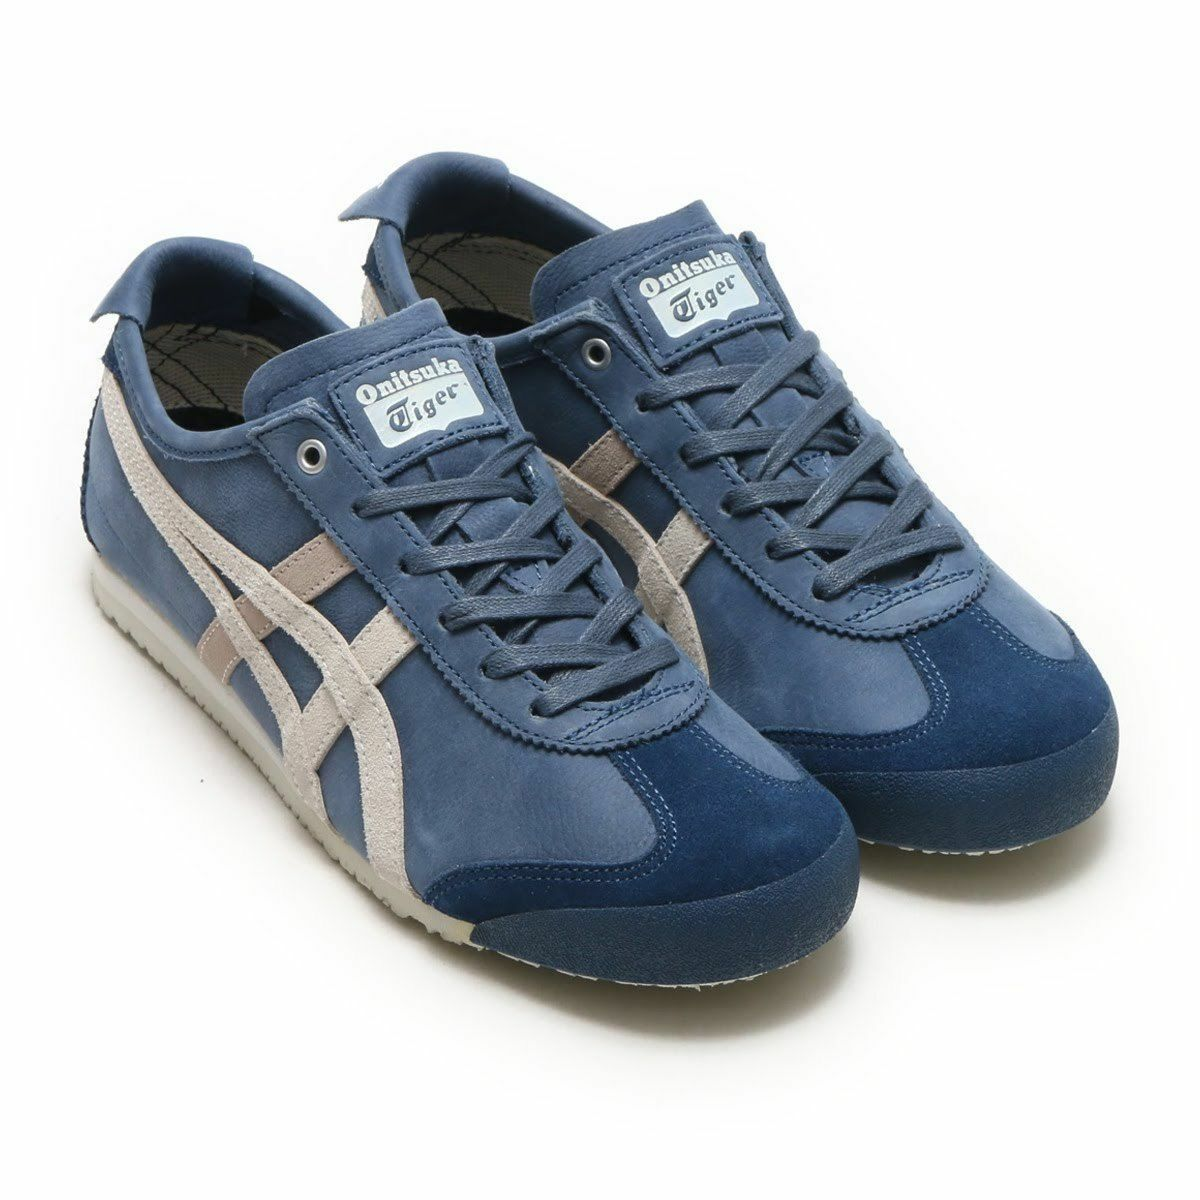 Onitsuka Tiger Mexico 66 Shoes Price reduction Casual Sneakers Trainers Special limited time